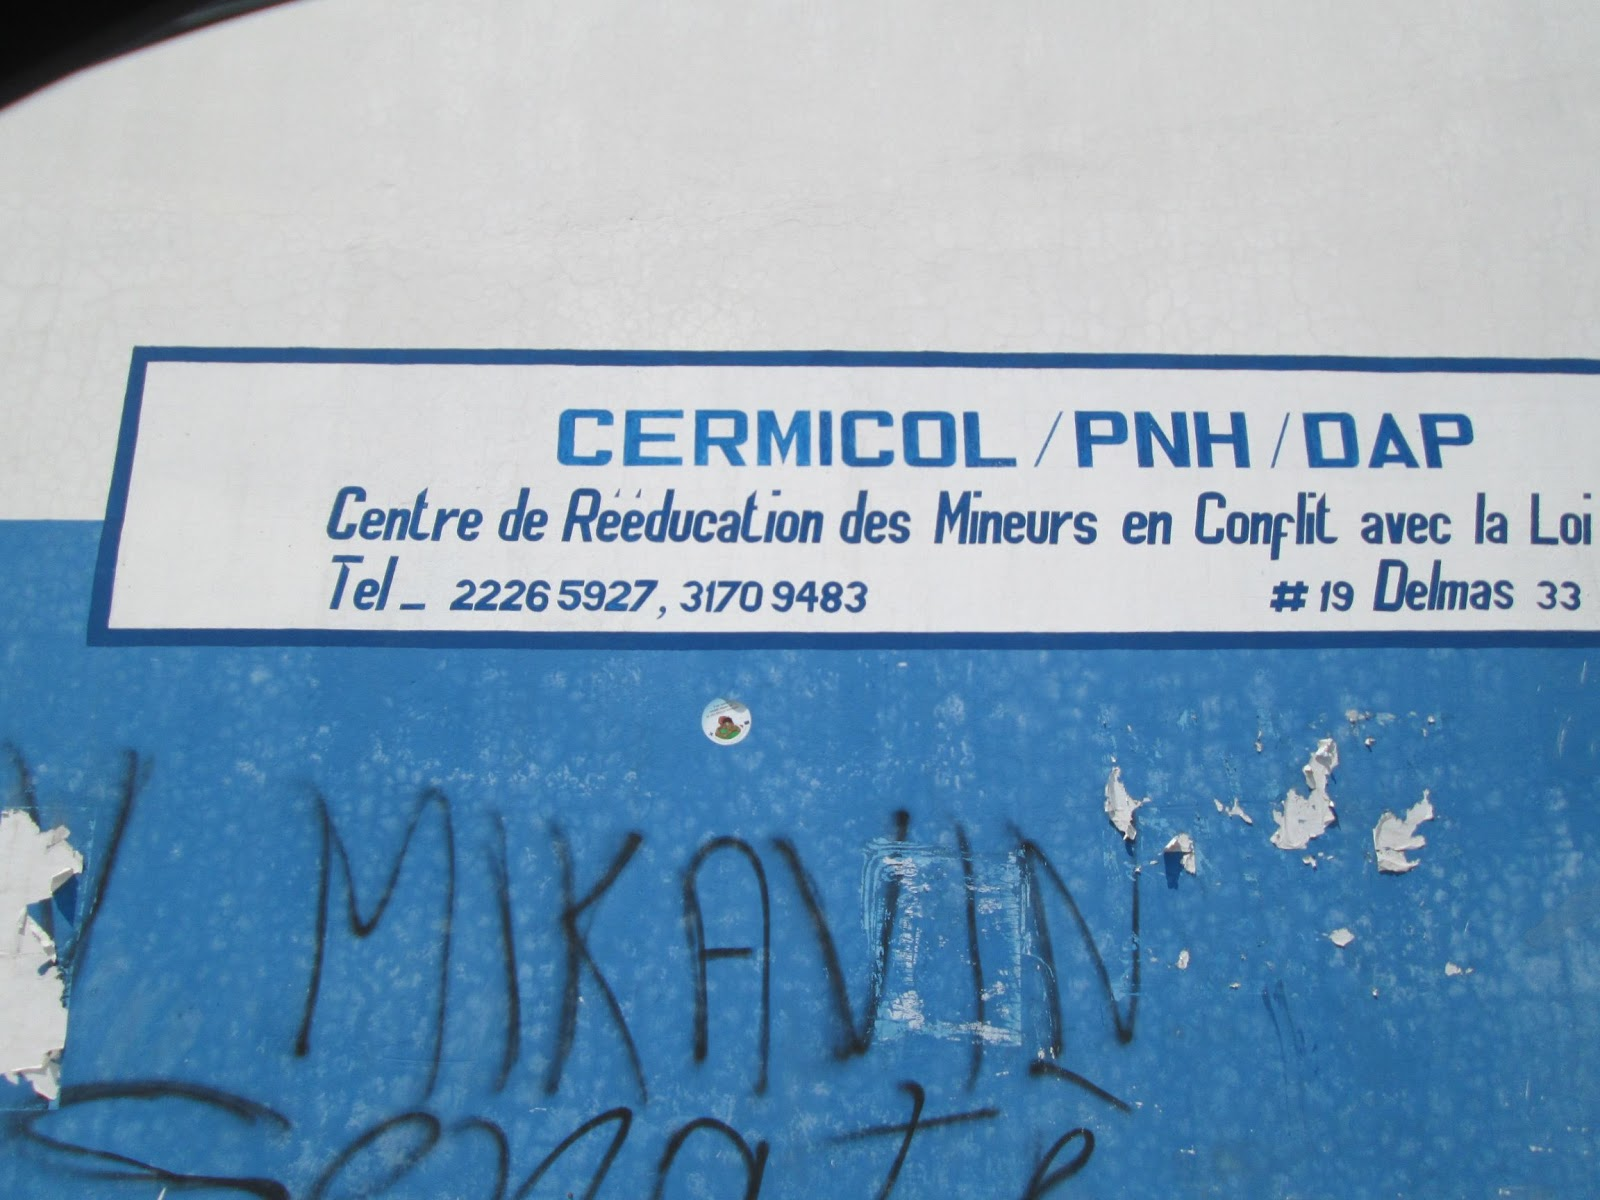 Photo : CERMICOL - Credit : Haiti Ceram Deo